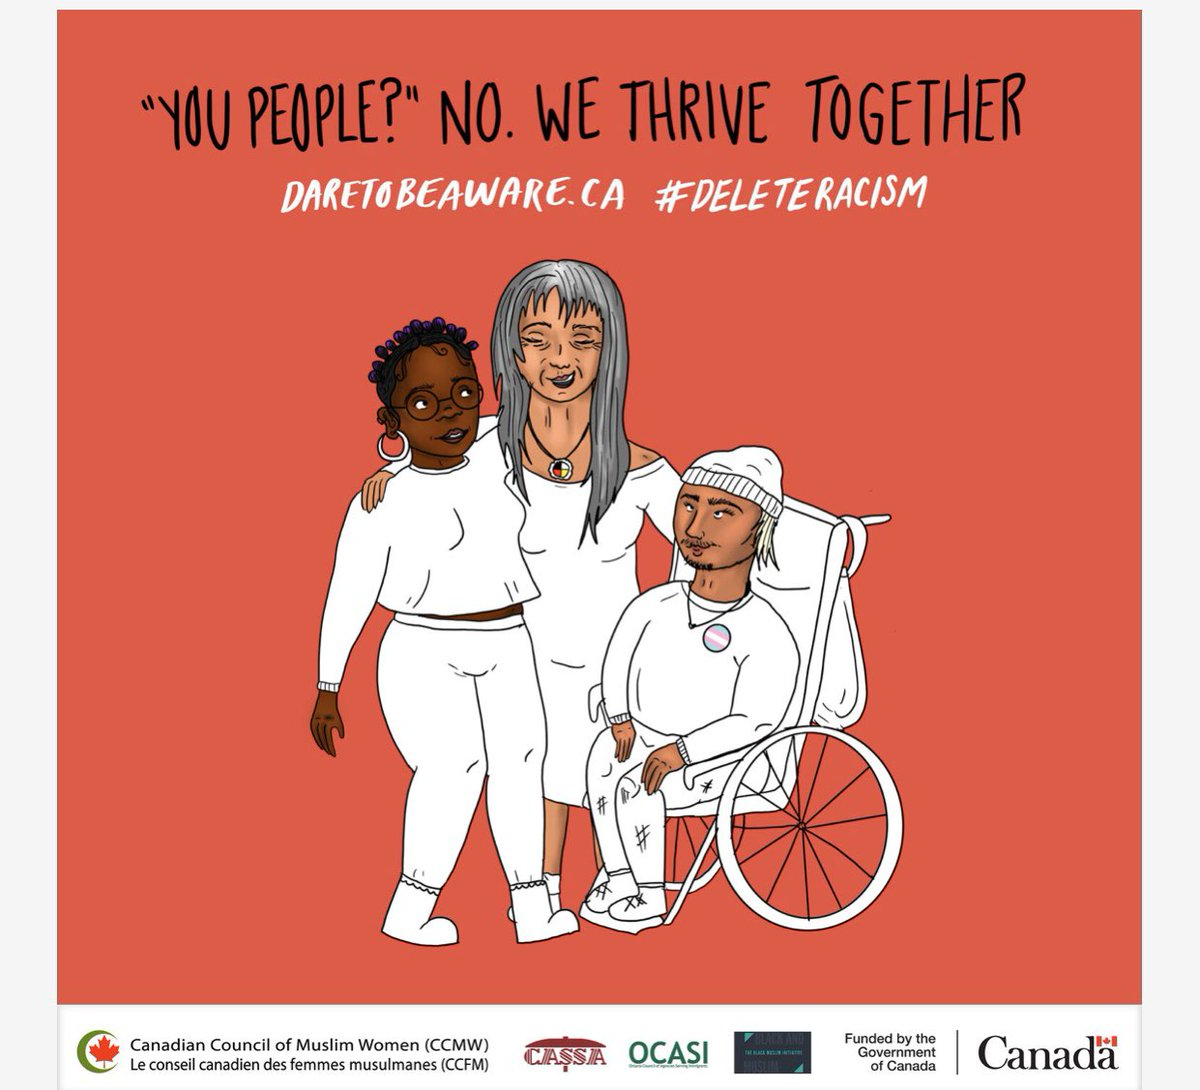 With @CCMWCanada #daretobeaware #antiracism #socialmarketing campaign anyone can be an #agentofchange champion by sharing #CCMW educative resources online using #deleteracism. This is a useful hug to #empower the  #targetaudience towards #behaviourchange. #unlearnracism #SocMarBUpic.twitter.com/Vgfr425Pq1